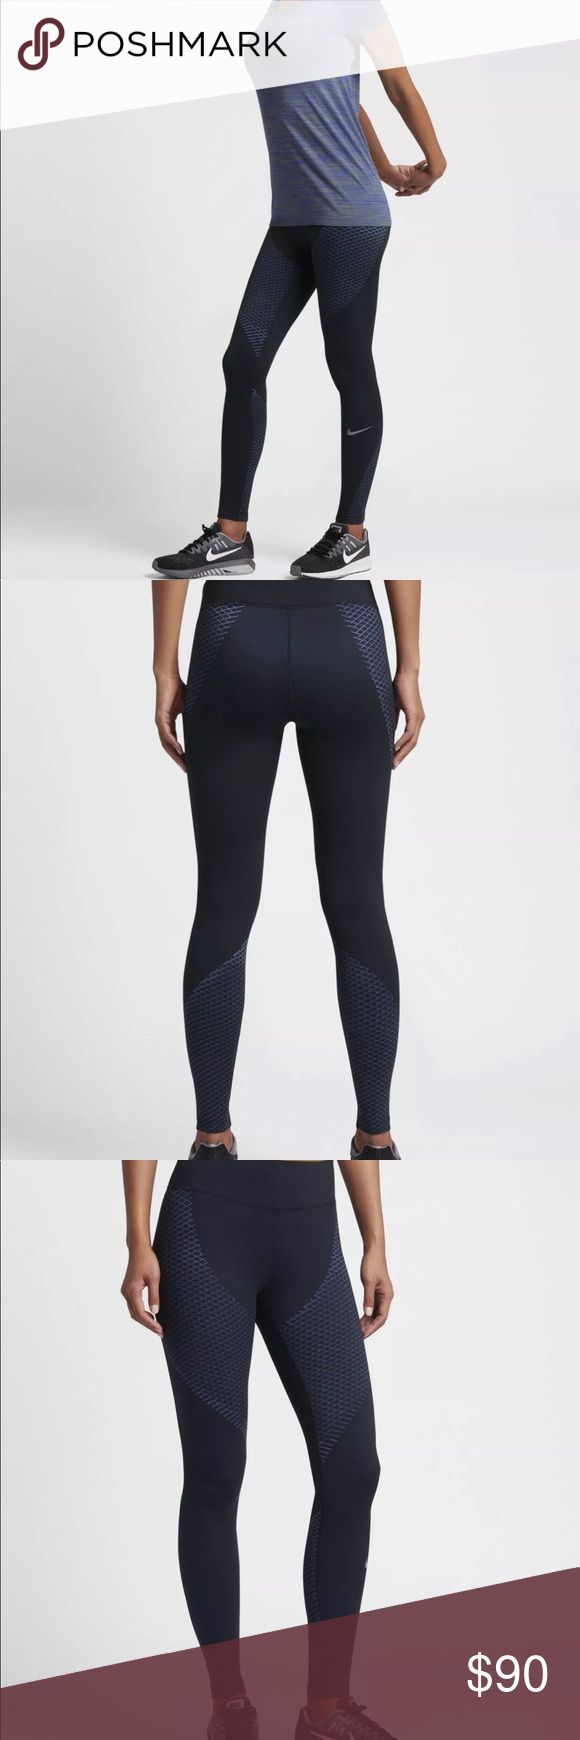 Nike Zonal Strength Wmns Printed Running Tights Nike Zonal Strength Wmns Printed Running Tights  831128-010  Black / Paramount Blue  Size S   TARGETED SUPPORT FOR RUNNERS  The Nike Zonal Strength Women's Running Tights offer incredible support for key muscles and exceptional stretch to help you conquer your fastest, longest runs.   TARGETED SUPPORT  Nike Zonal Strength technology creates a compressive, locked-in feel around your quads and calves to help reduce muscle vibration. Four-way…